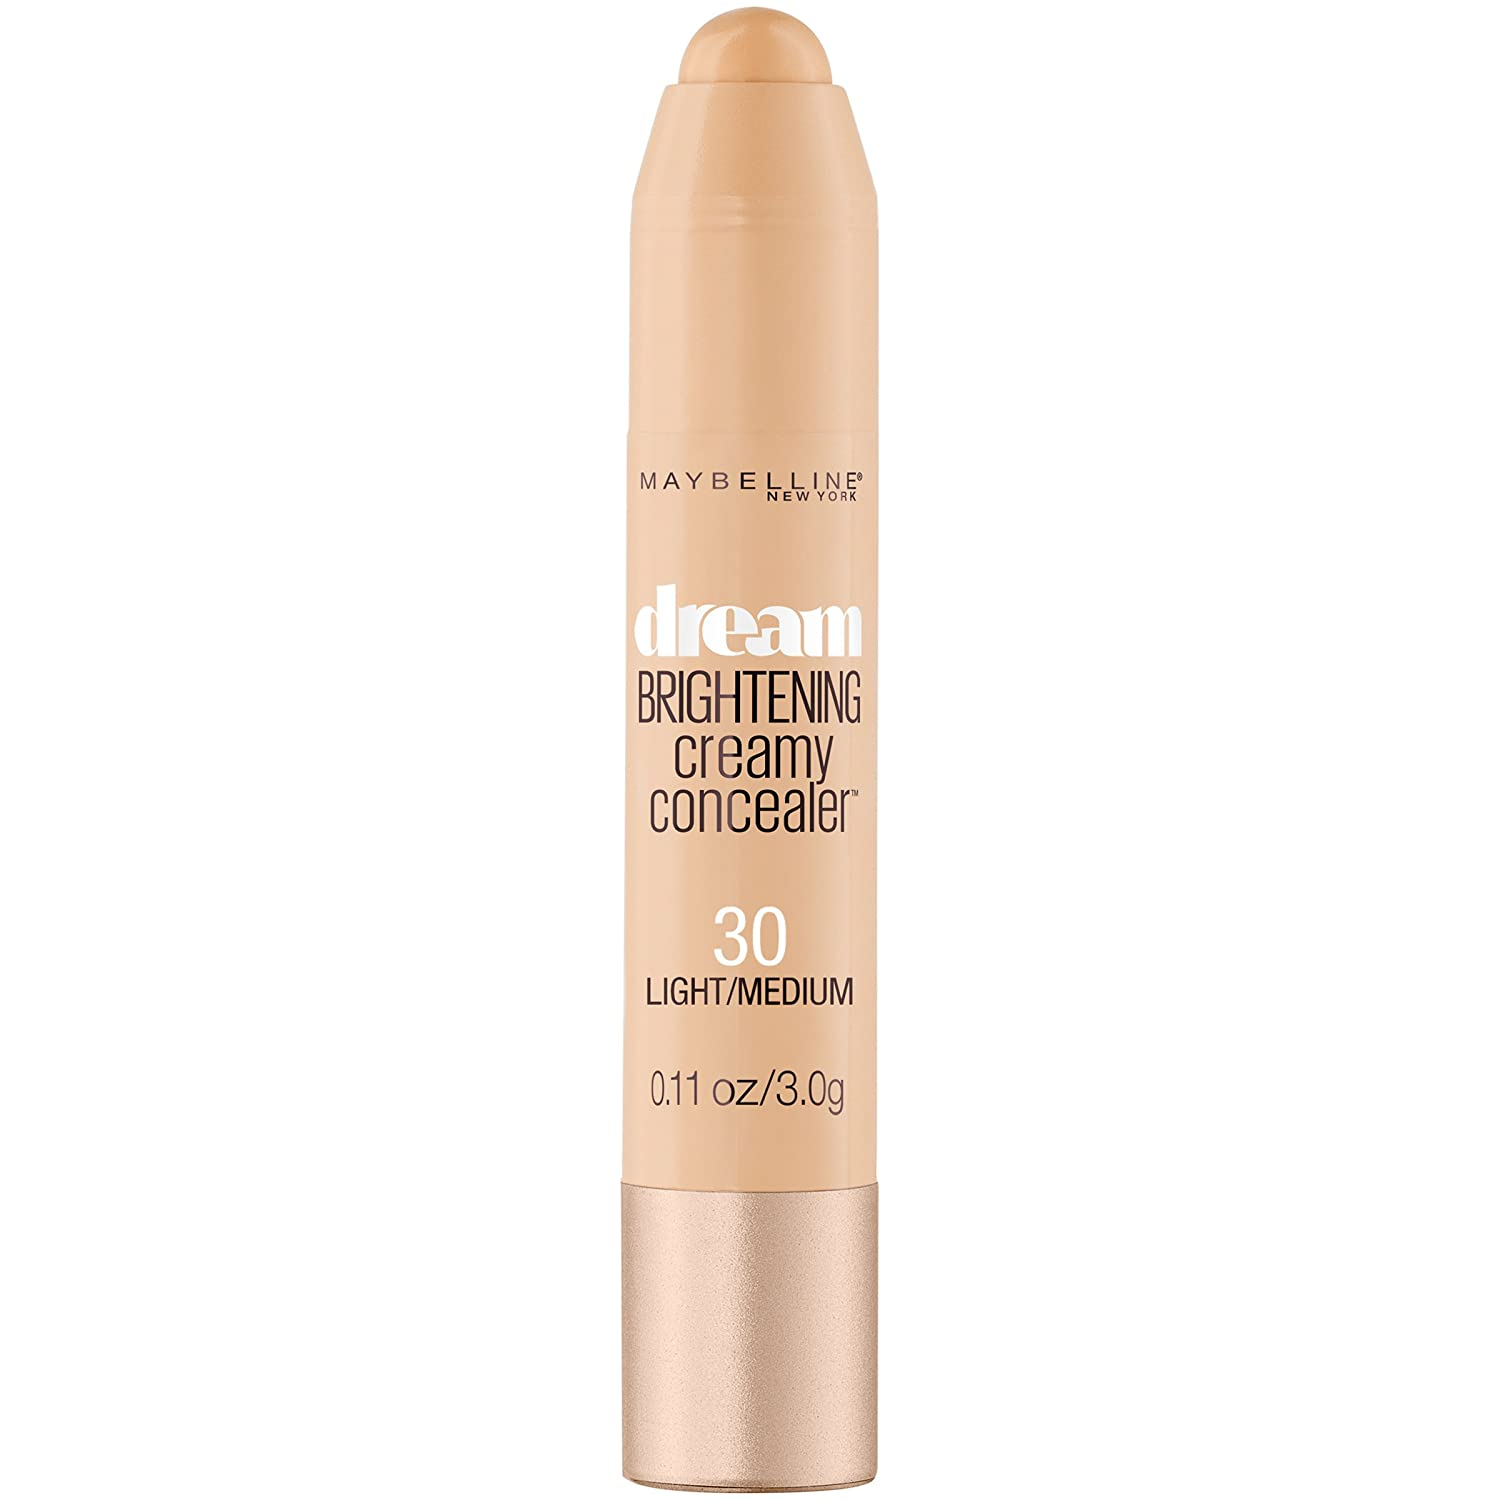 Maybelline New York Dream Brightening Creamy Concealer, Light/Medium, 0.11 Ounce